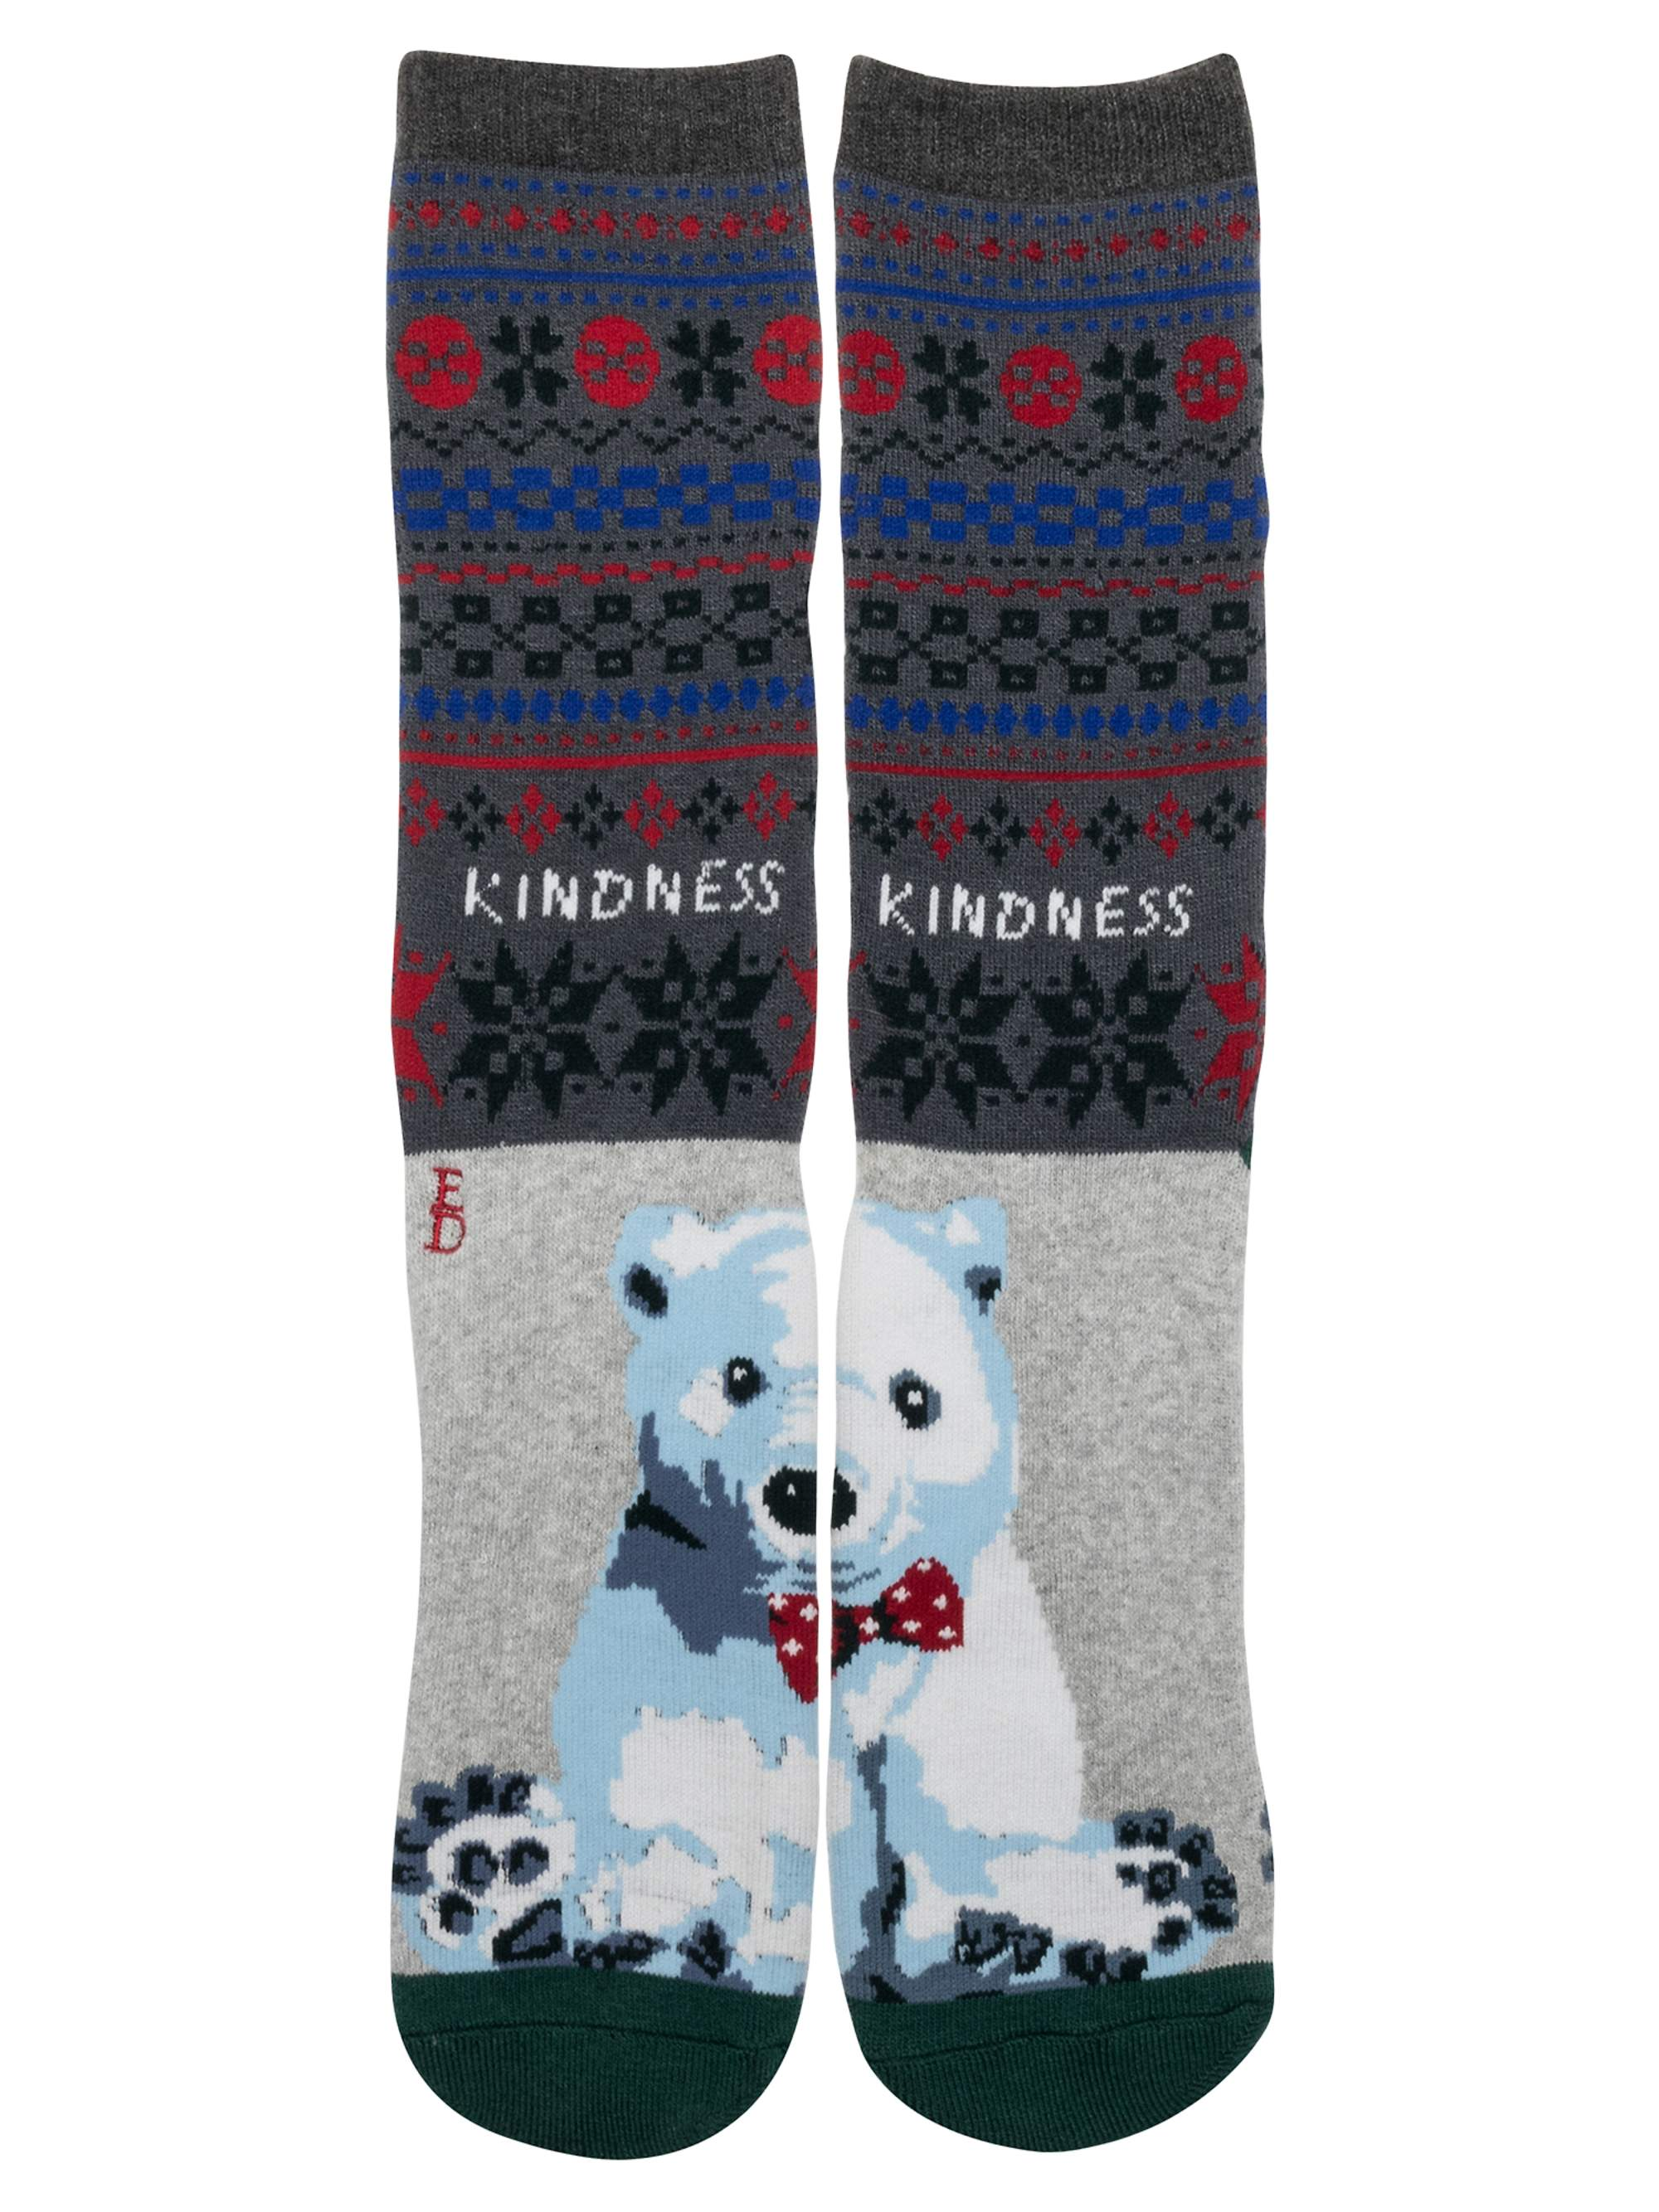 Women's Fair Isle Polar Bear Kindness Crew Socks